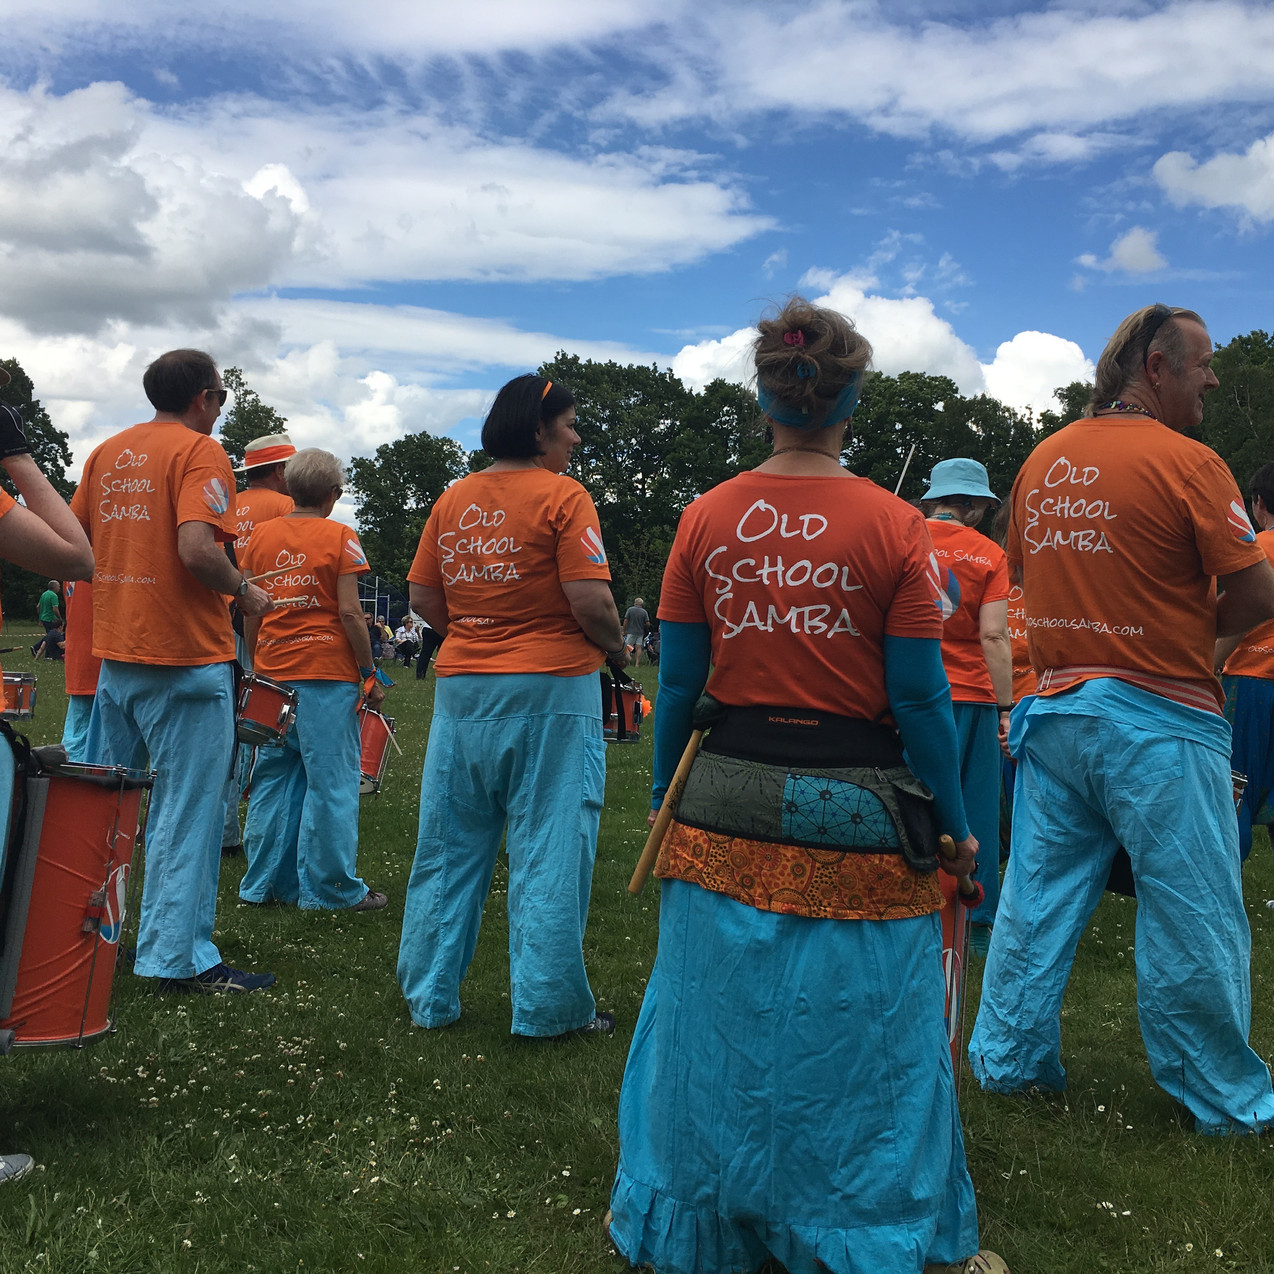 Old School Samba on the sports Field at Kingswood